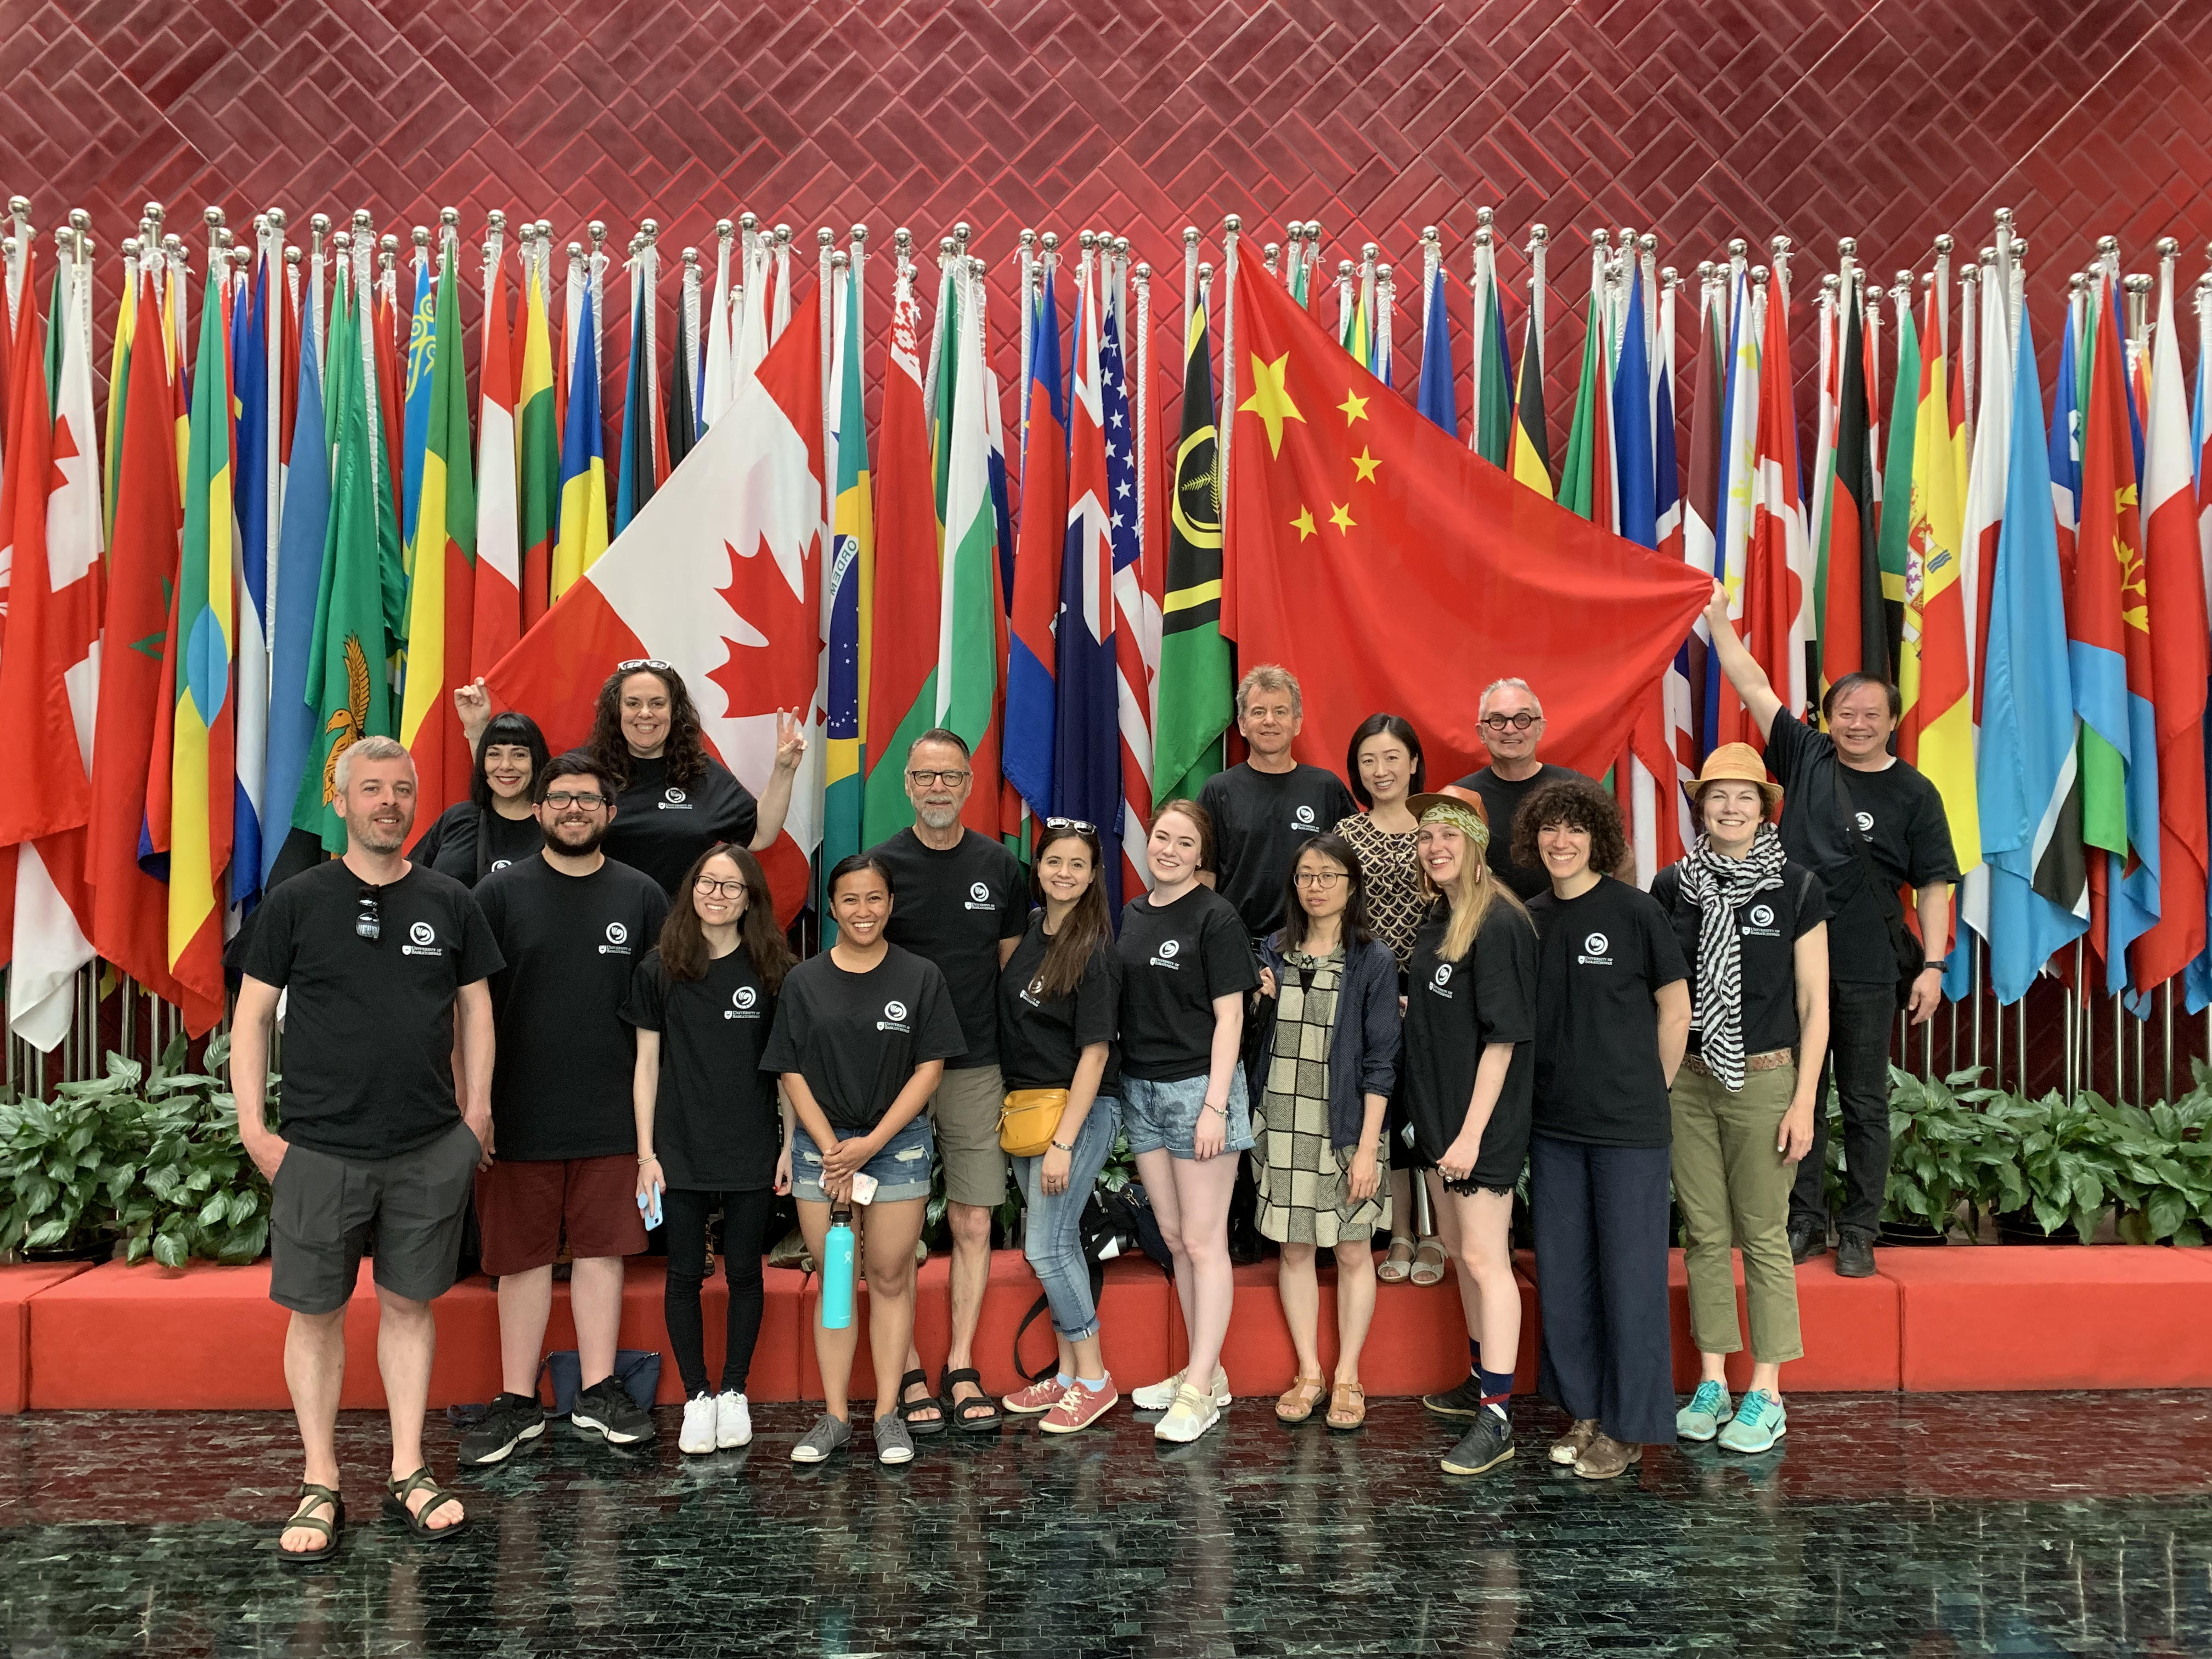 2019 Usask Department Of Art And Art History China Study Tour Confucius Institute At The University Of Saskatchewan University Of Saskatchewan